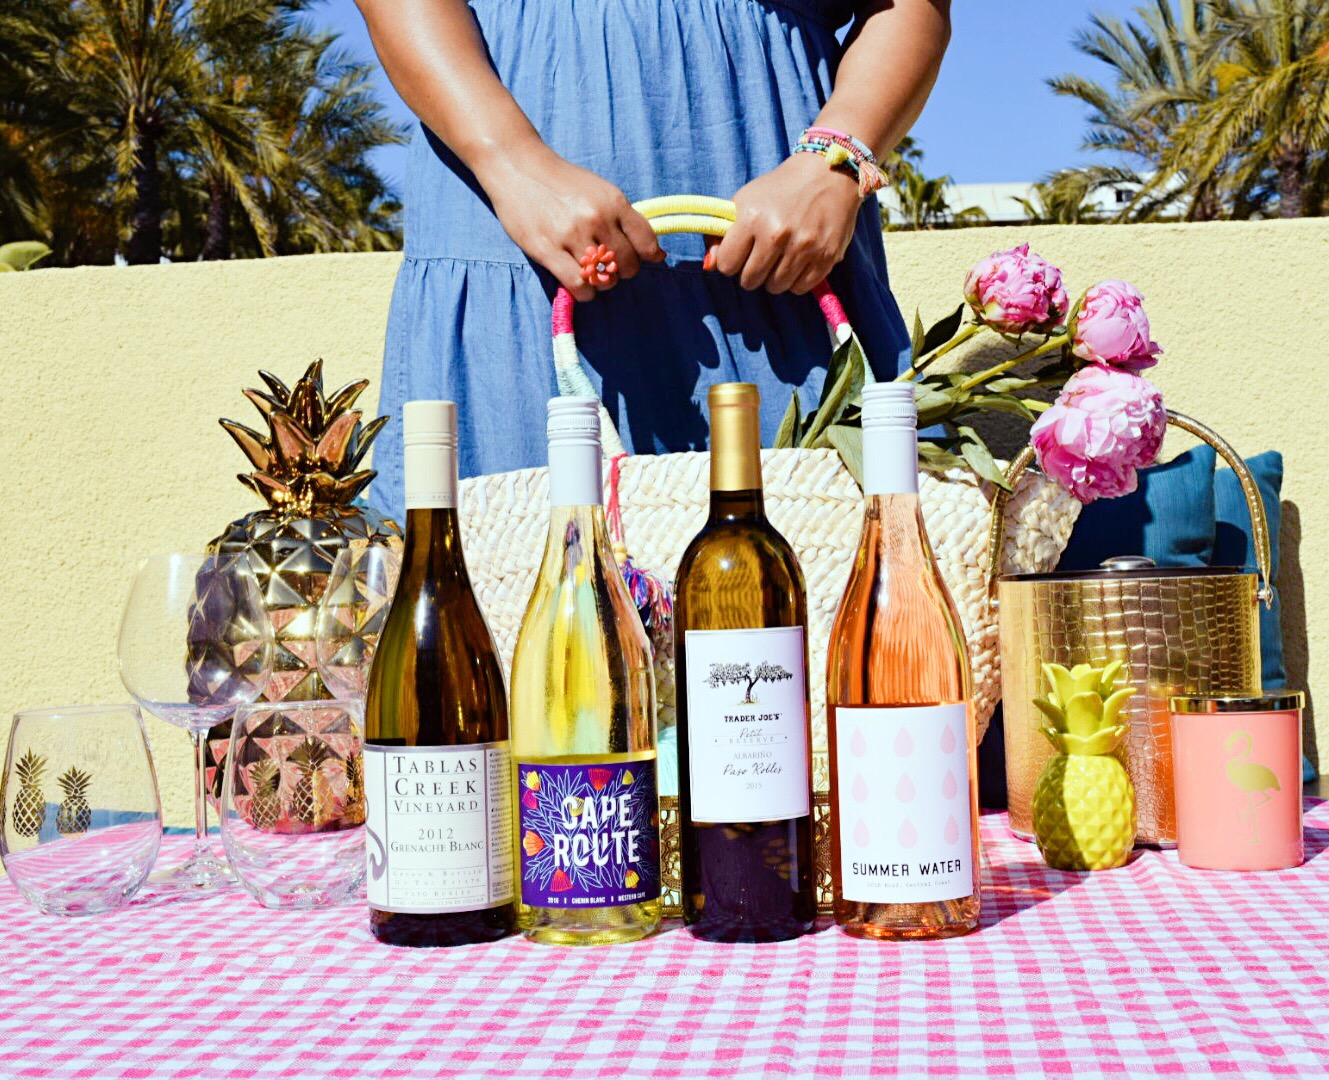 4 Wines All Millennials Should Be Drinking This Summer